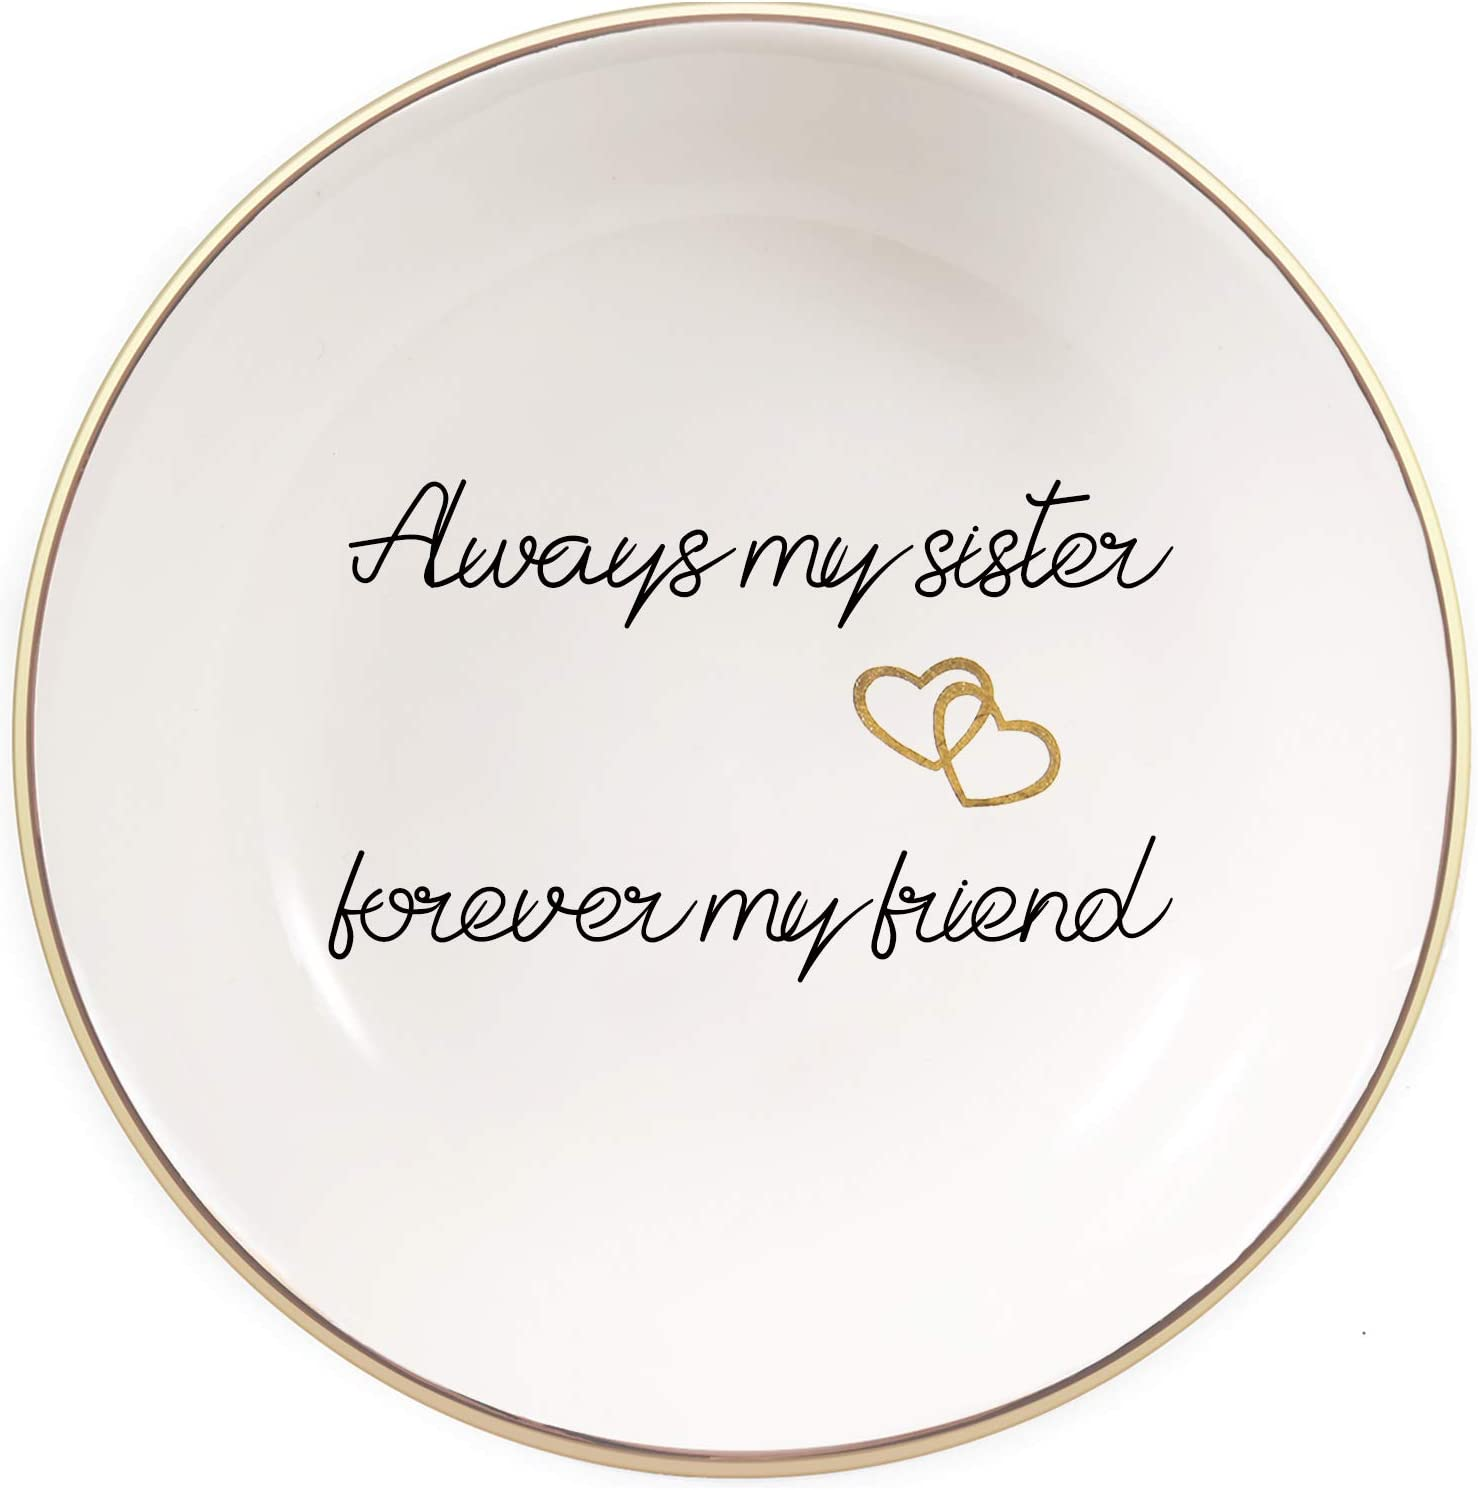 Quany Life Sister Gifts Trinket Dish – Always My Sister,Forever My Friend,Gold Ceramic Ring Dish Decorative Jewelry Tray for Sister Birthday Gifts Thanksgiving Day Sisters